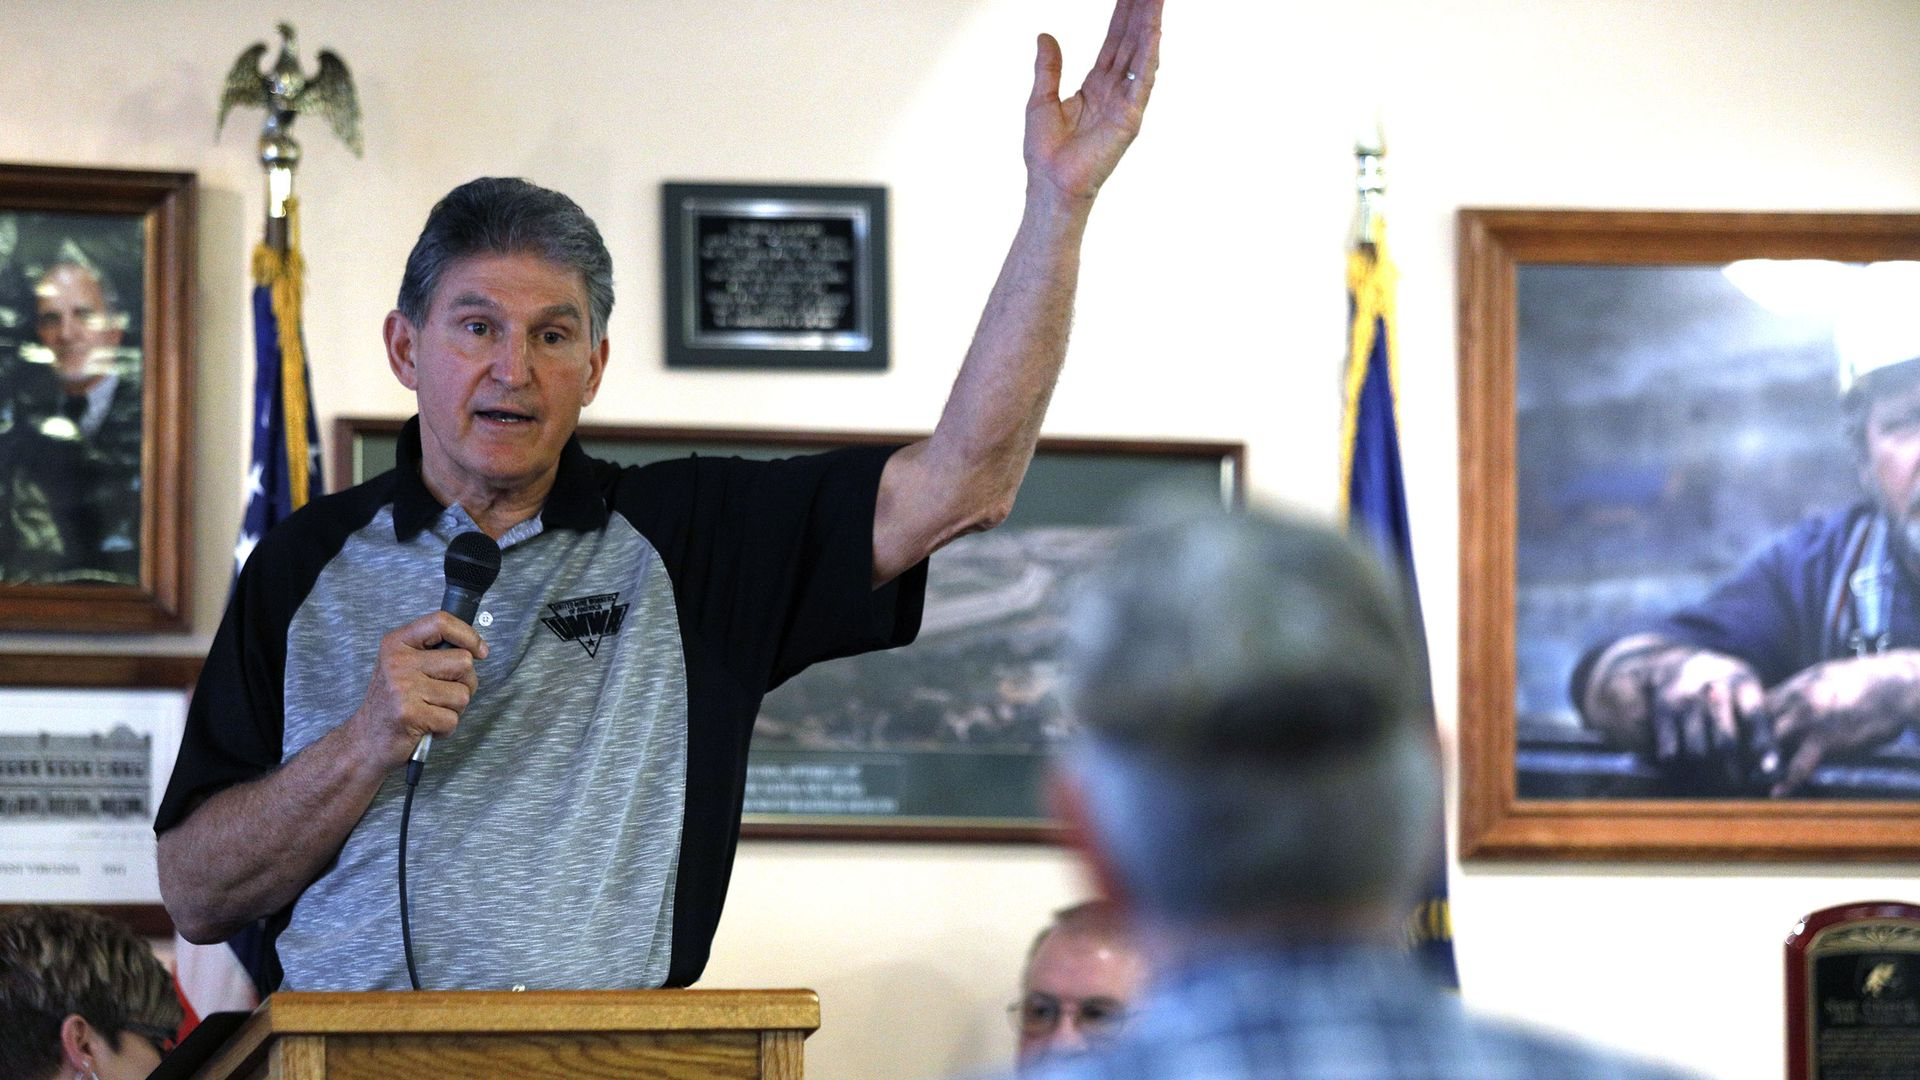 Sen. Joe Manchin speaks at a town hall meeting.